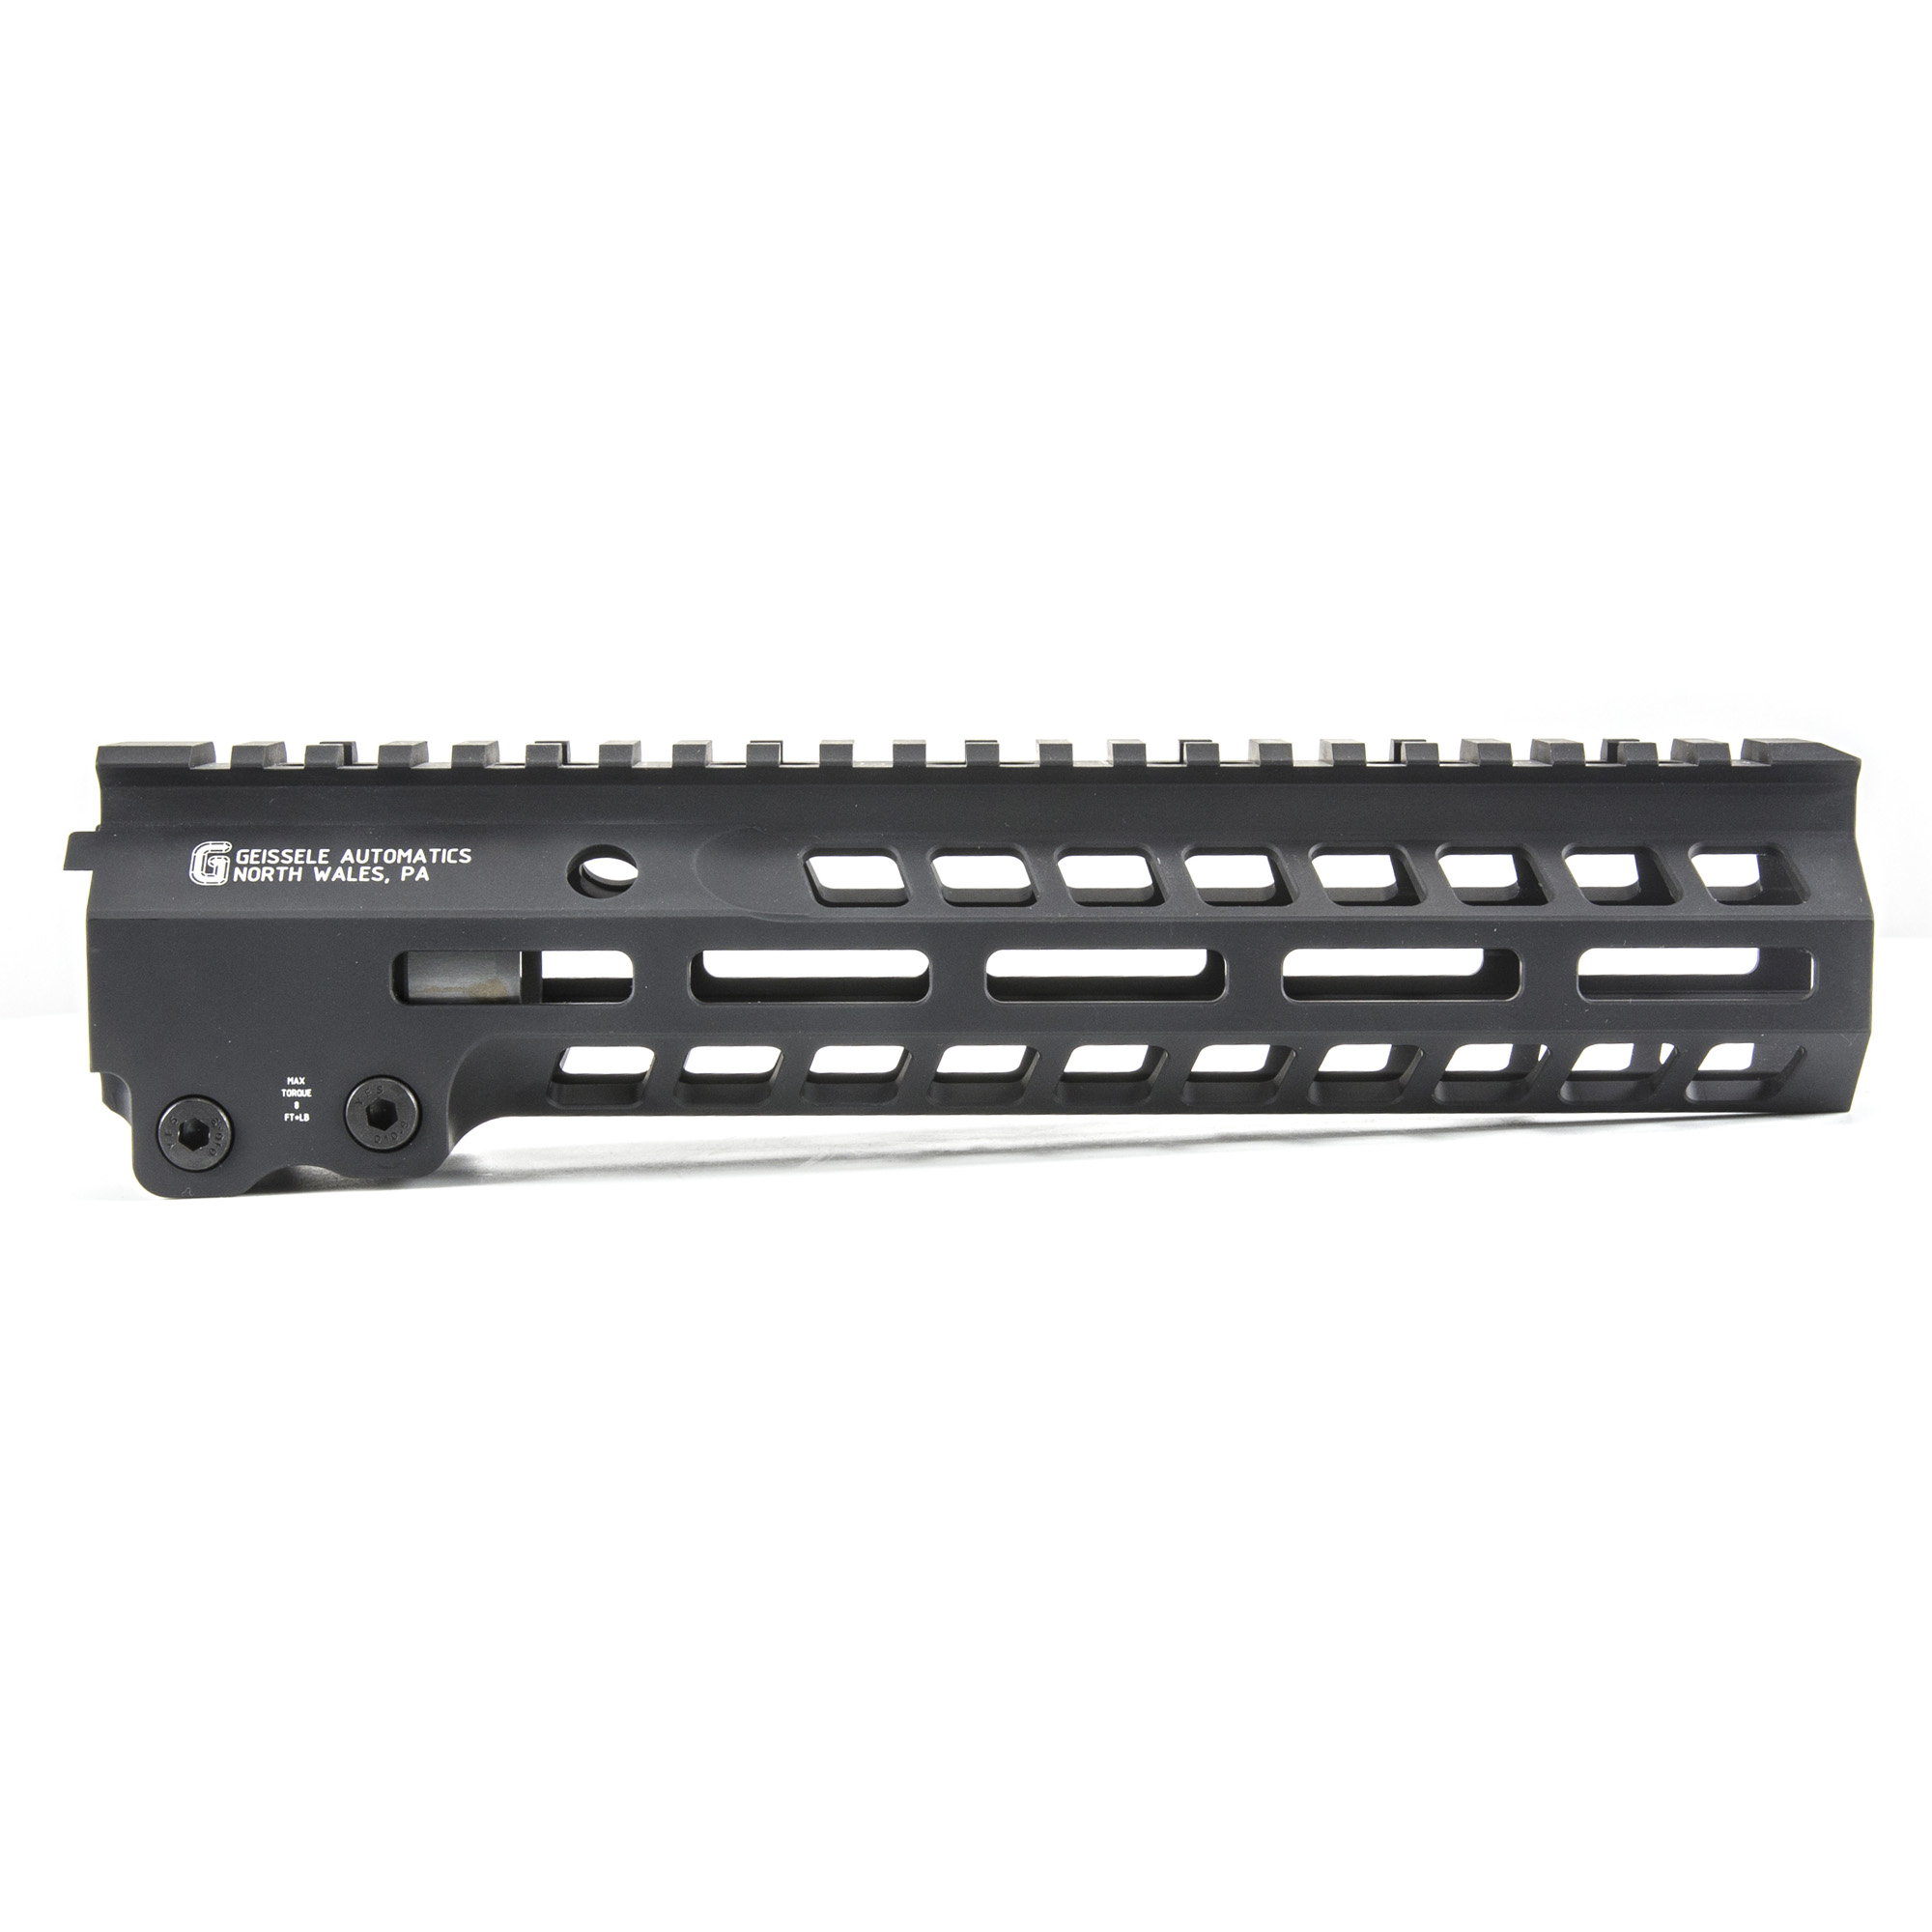 """Geissele's Super Modular 9.5"""" MK14 M-Lok Rail"""" is the latest entry to the Geissele line up of Super Modular Rails. The new handguard design offers a smaller diameter and overall height to create a slimmer package. Included with the MK14 Super Modular Rail is an updated version of the proven Geissele Barrel Nut design"""" not only providing ease of installation but superior rigidity. The long surface contact of the 2.25"""" barrel nut interfaces with the receiver creating a platform that can be trusted to be straight and true the entire length of the free float rail. The MK14 is 3d precision machined using 6061-T6 Aluminum due to its strong"""" rigid and lightweight properties. Utilizing Magpul's M-LOK technology in the 3"""" 6"""" and 9 o'clock positions allow the end user full customization and modularity of their rifle to securely mount lights"""" bipods and other firearm accessories. The Geissele MK14 Super Modular rail is Type 3 Hardcoat Anodized. This product is bundled with a low-profile Geissele Super Gas Block."""